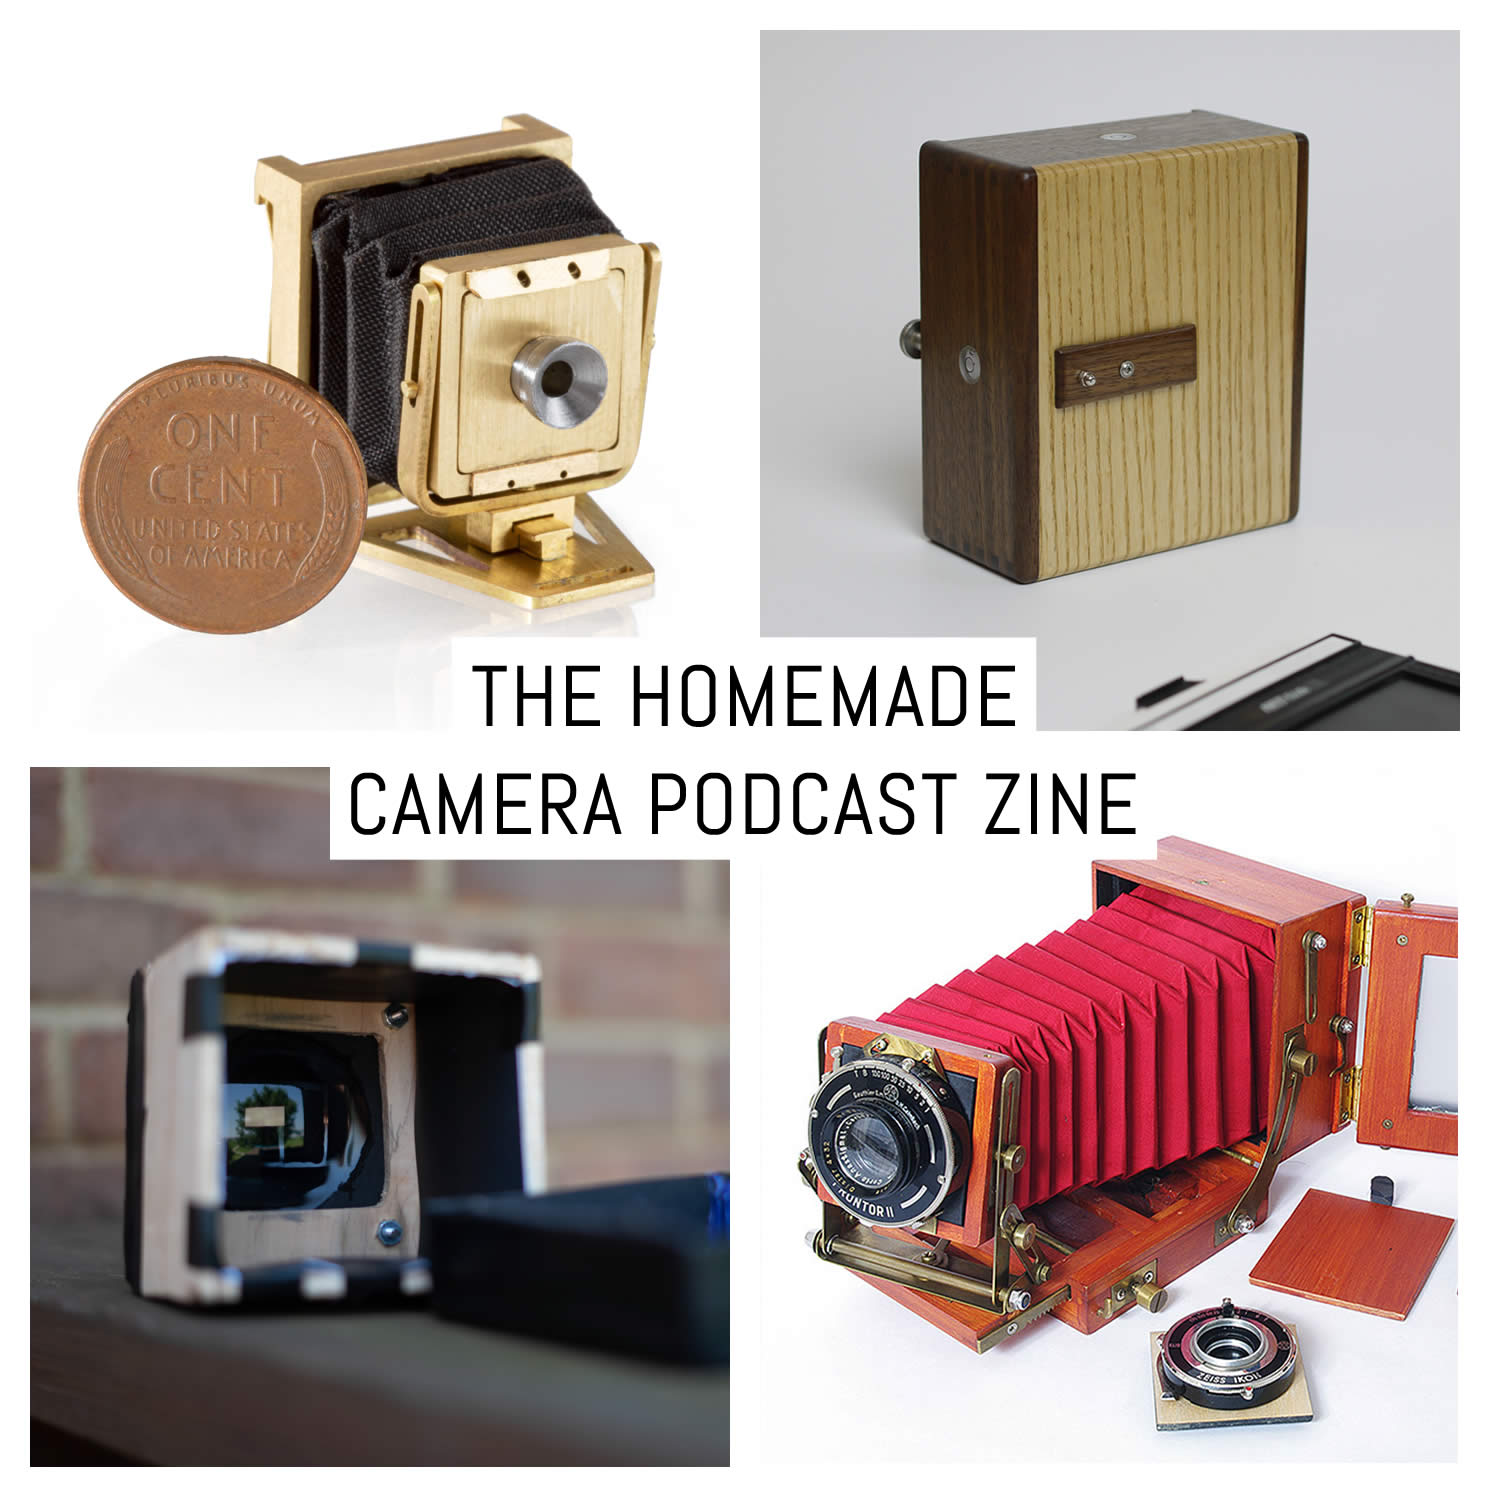 The Homemade Camera Podcast zine – by Ethan Moses